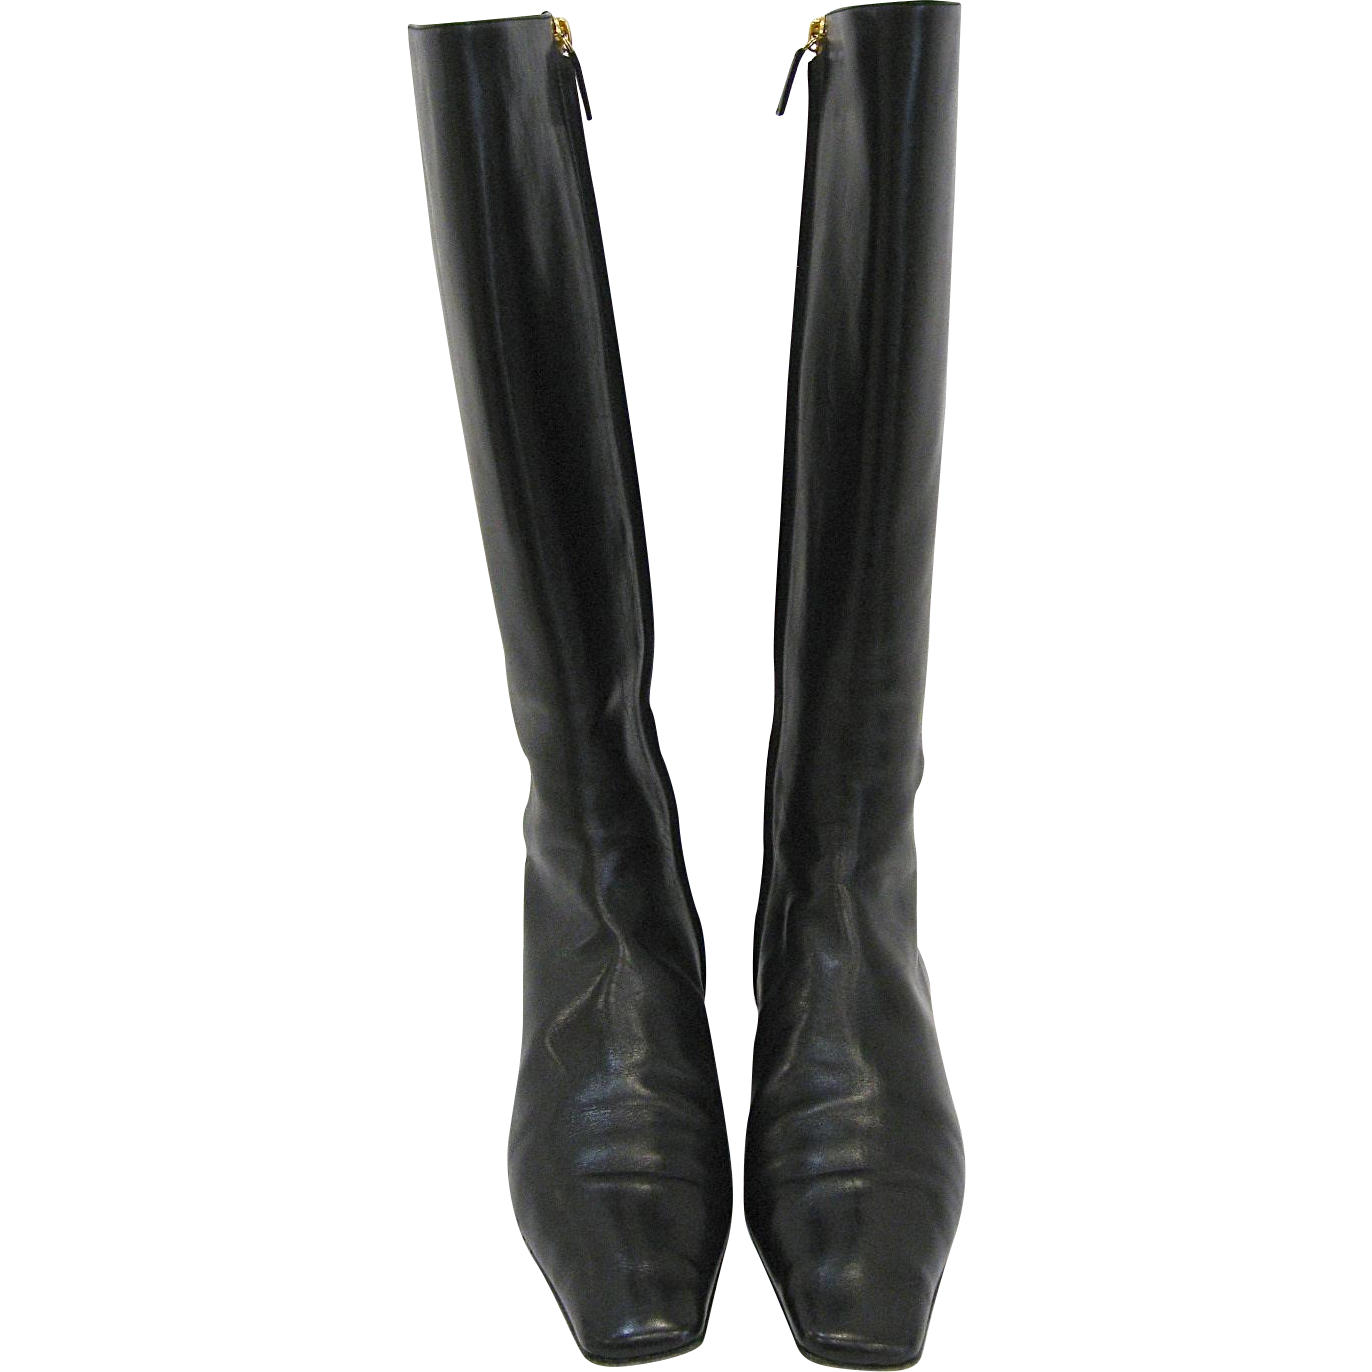 Chanel Black Leather Tall Boots Sz 38